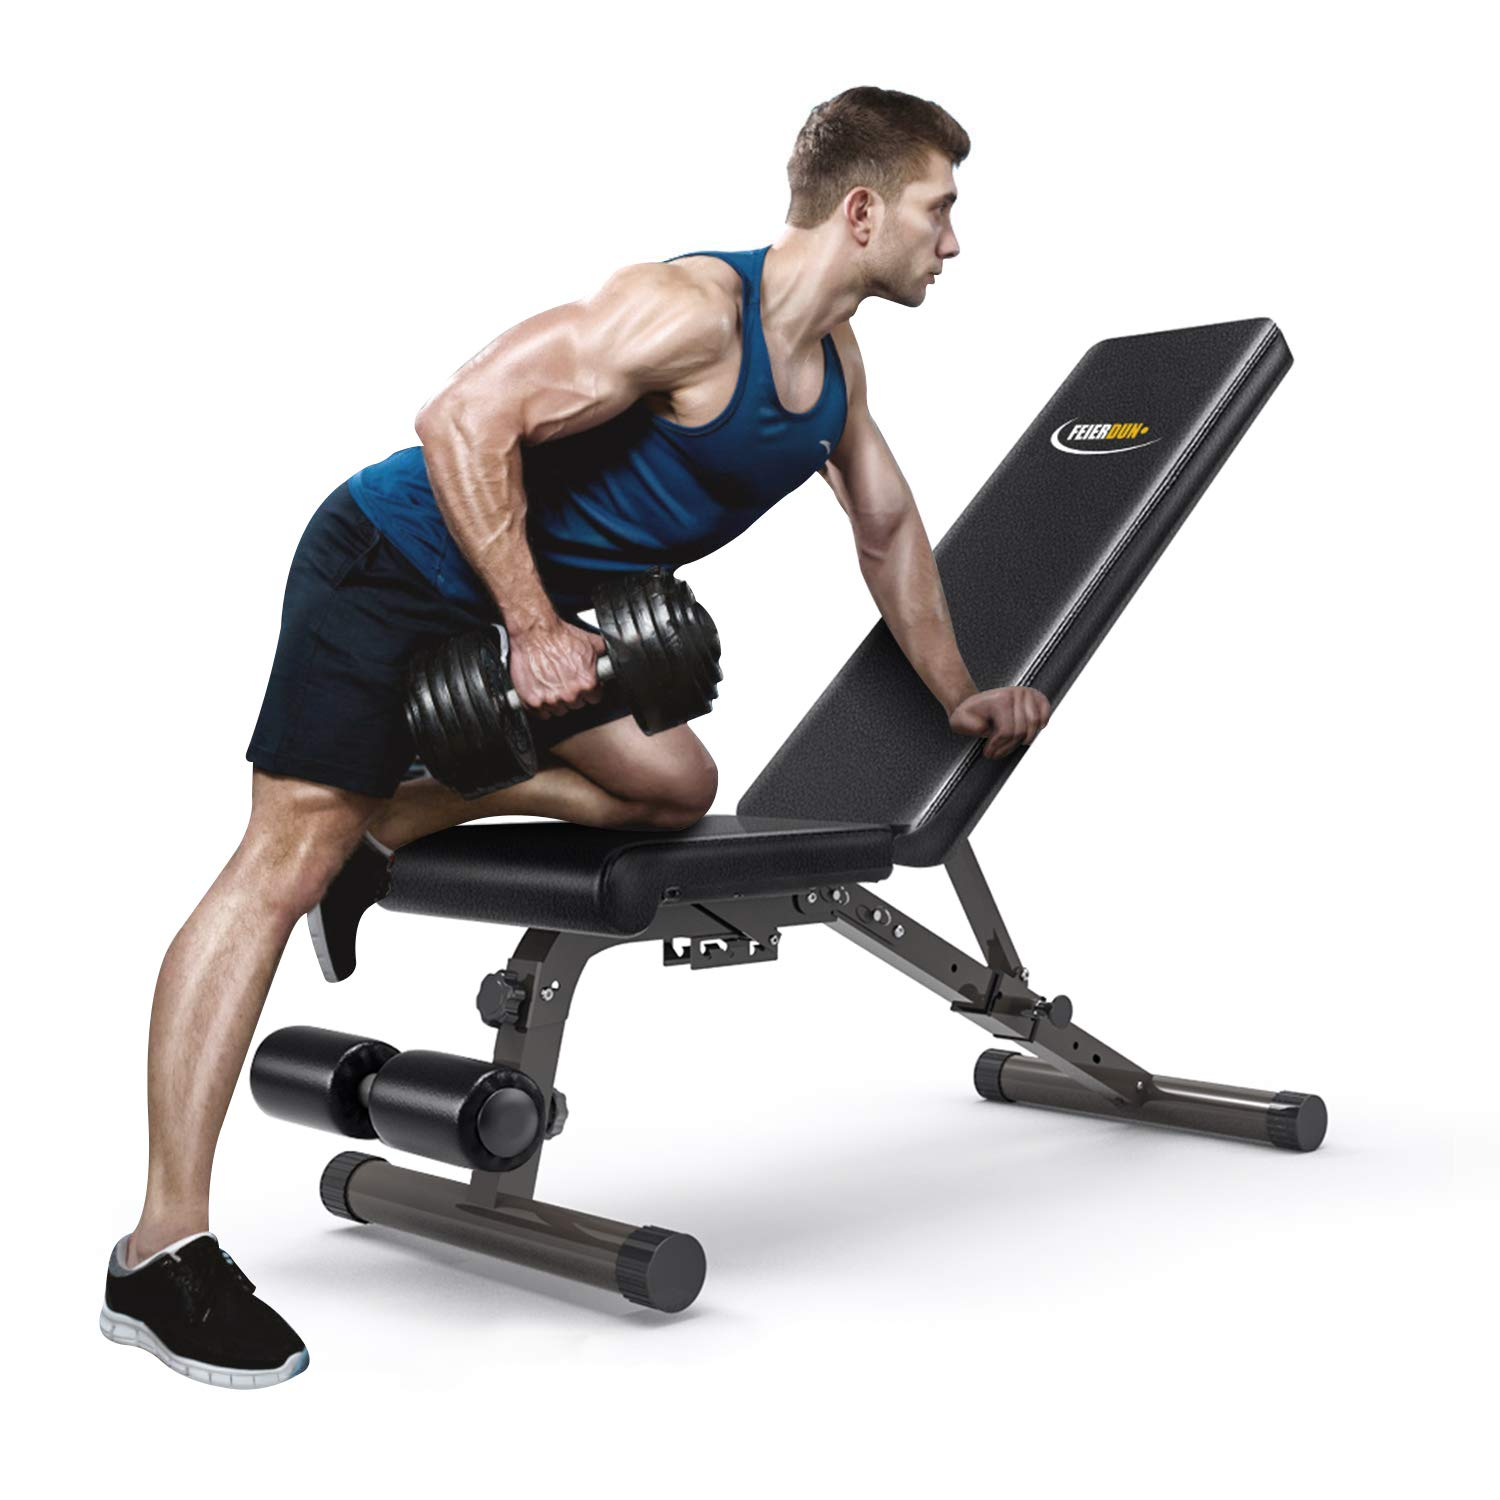 FEIERDUN FIT-PT Adjustable Weight Bench-Incline & Decline to Make A Full Body Workout Foldable Bench, Black